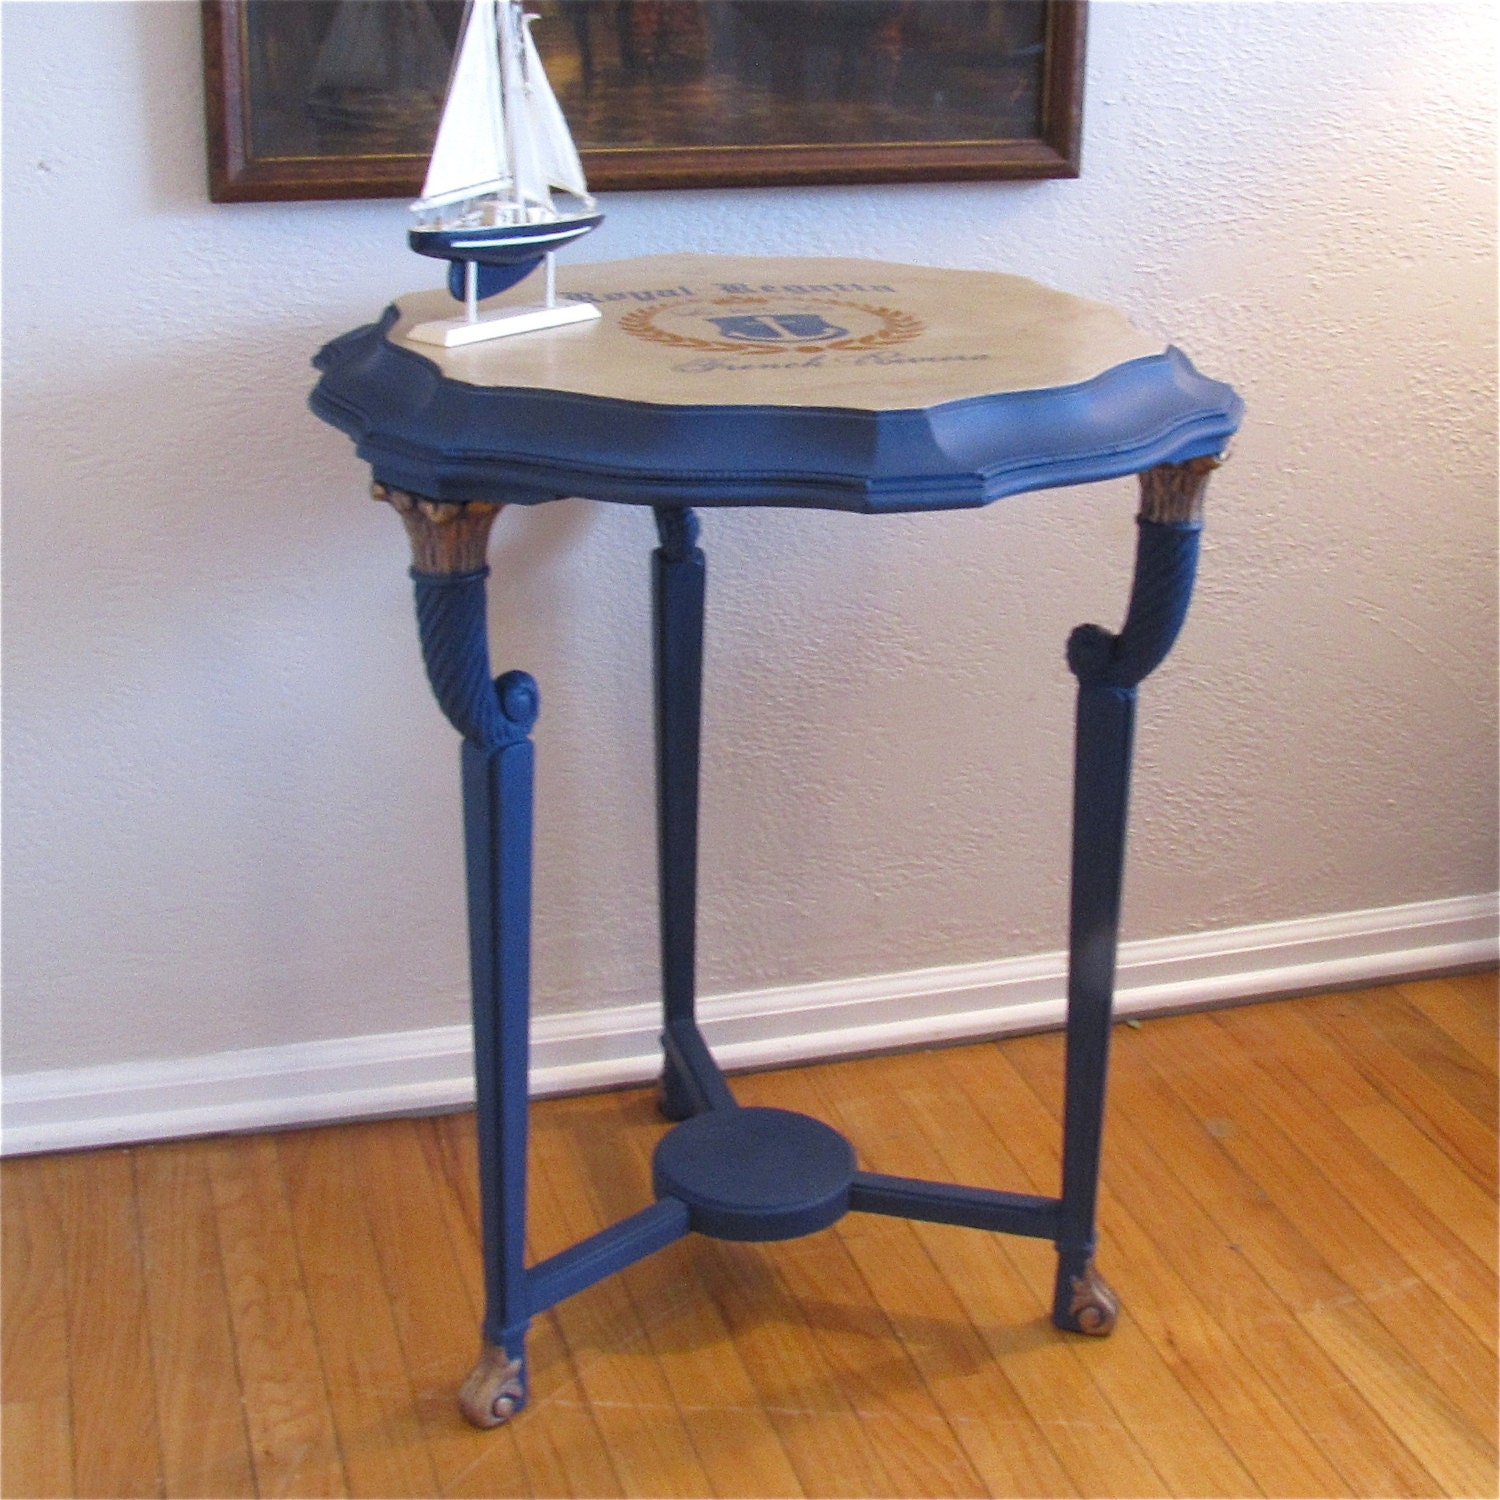 Vintage Nautical Side Table By Soldier58 On Etsy